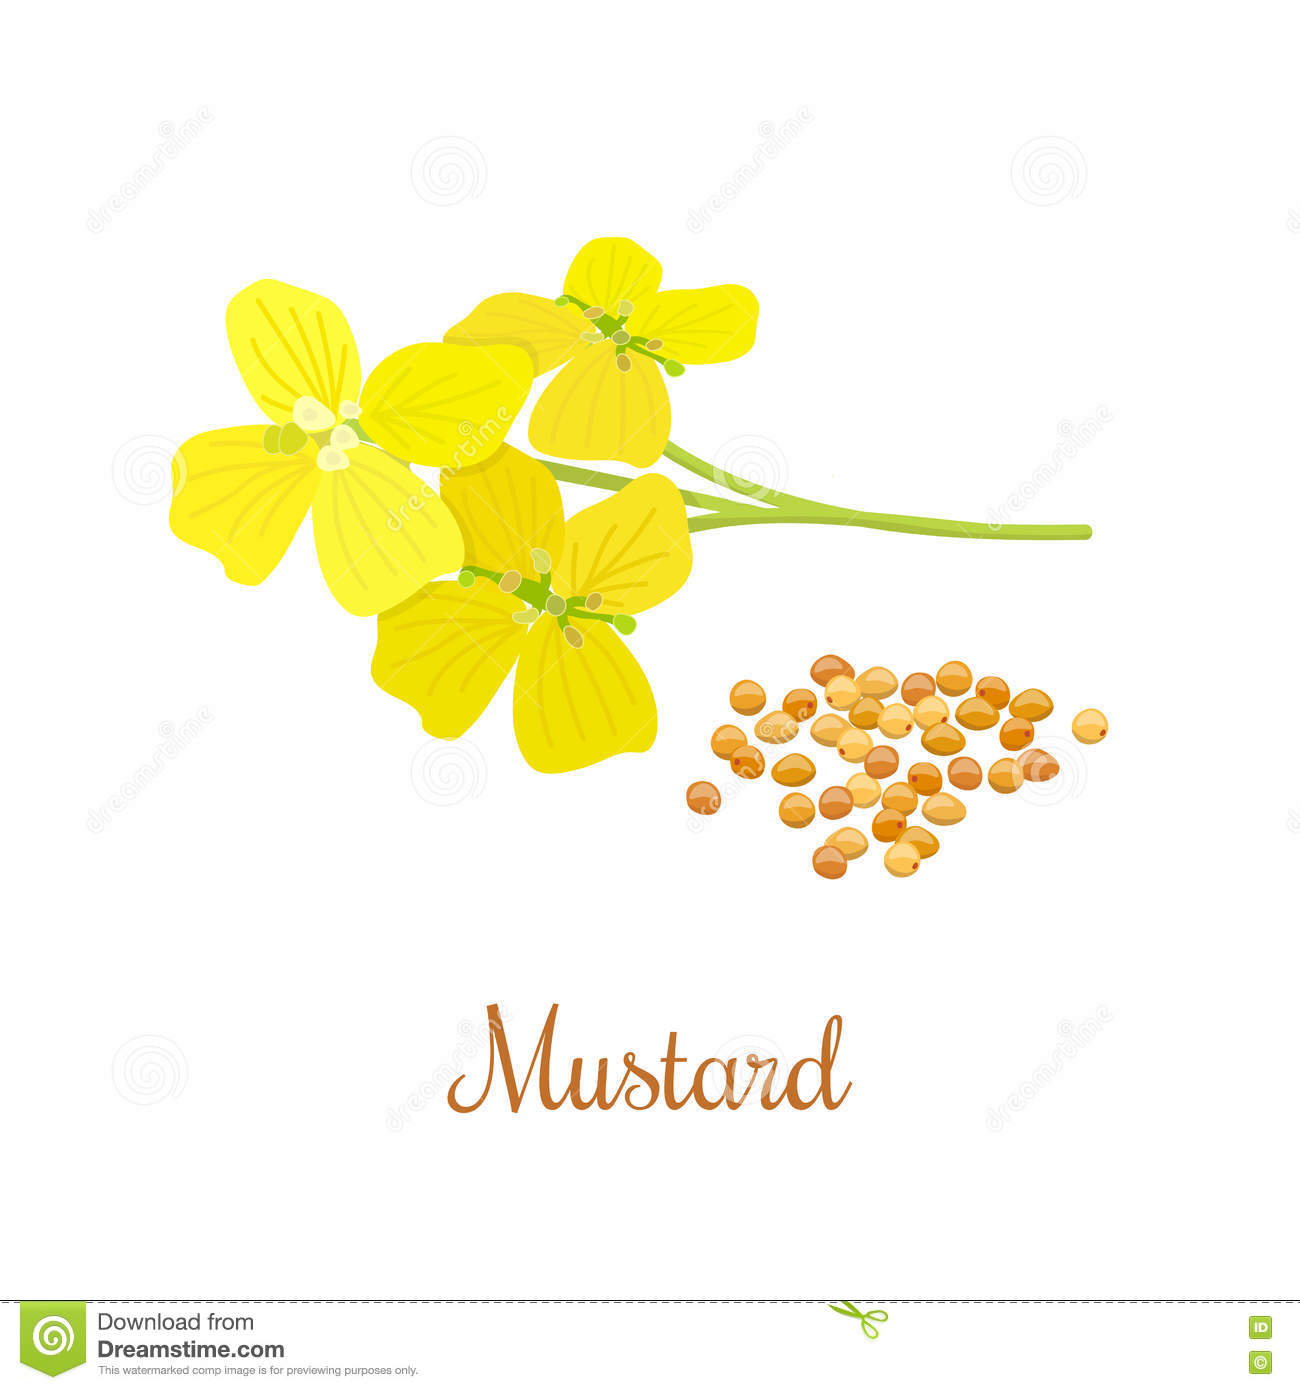 Mustard flower and seeds stock image. Image of floral - 79596807